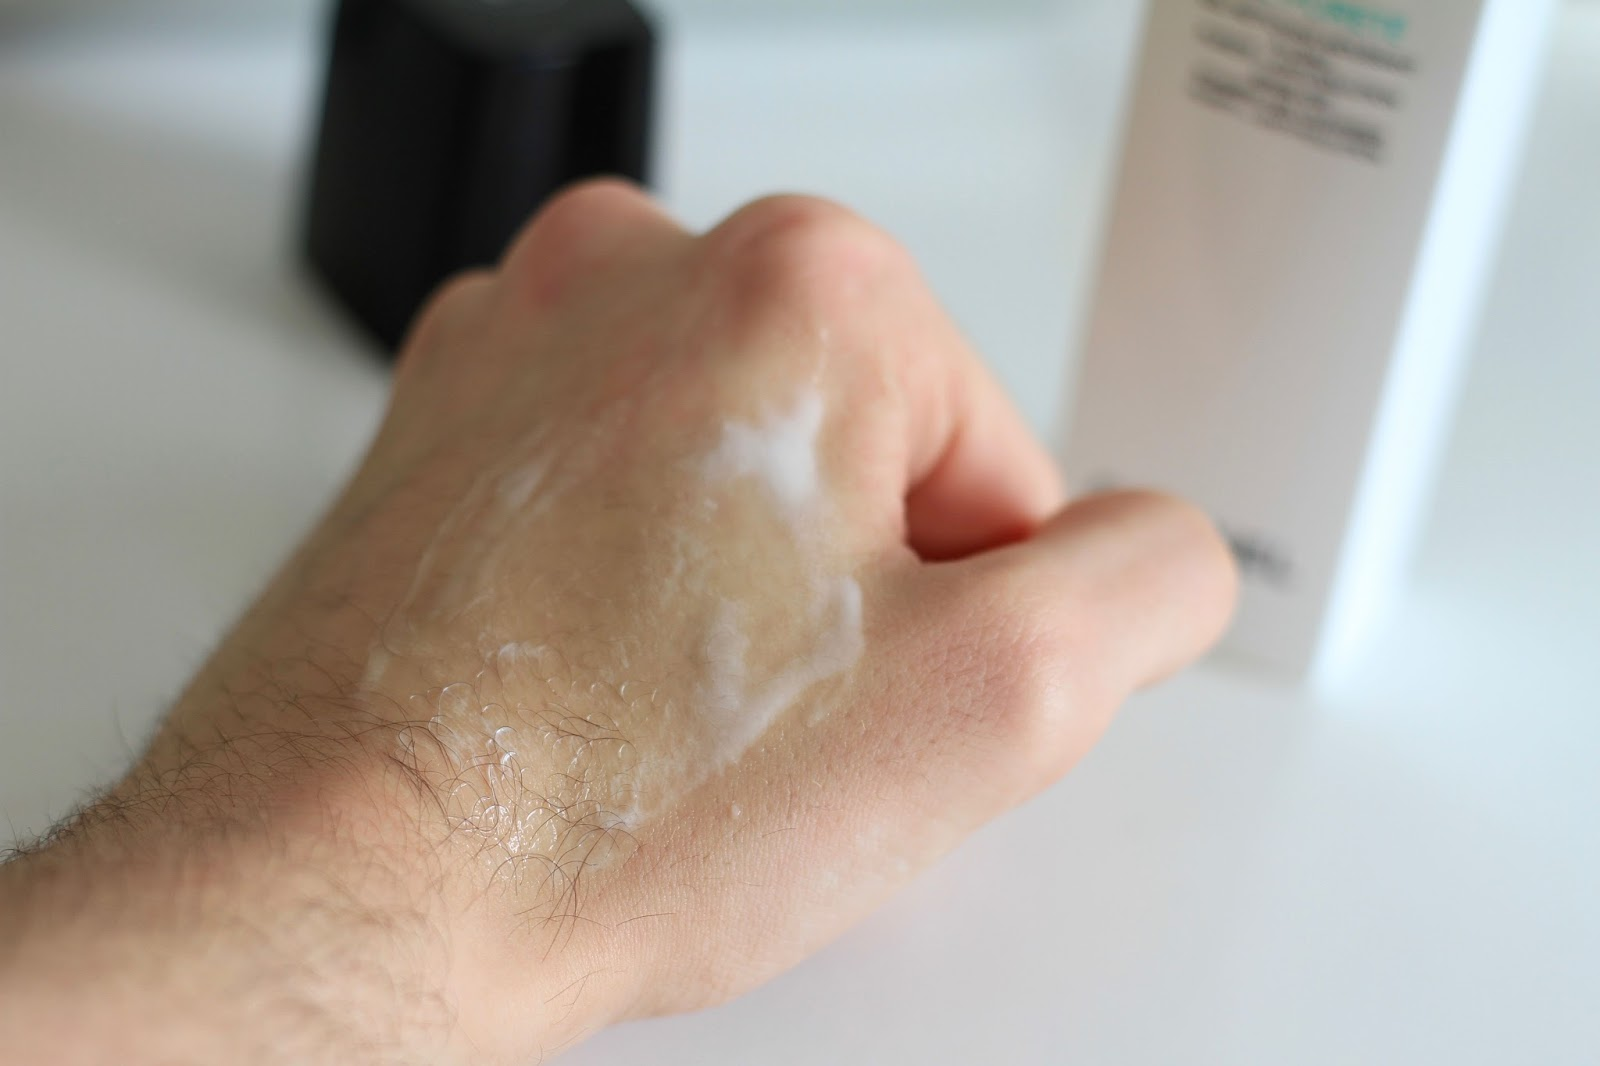 Find out more about the Chanel Gel Purete here! What s your favourite  cleanser  I d love to know. 3a15c80cb5c5